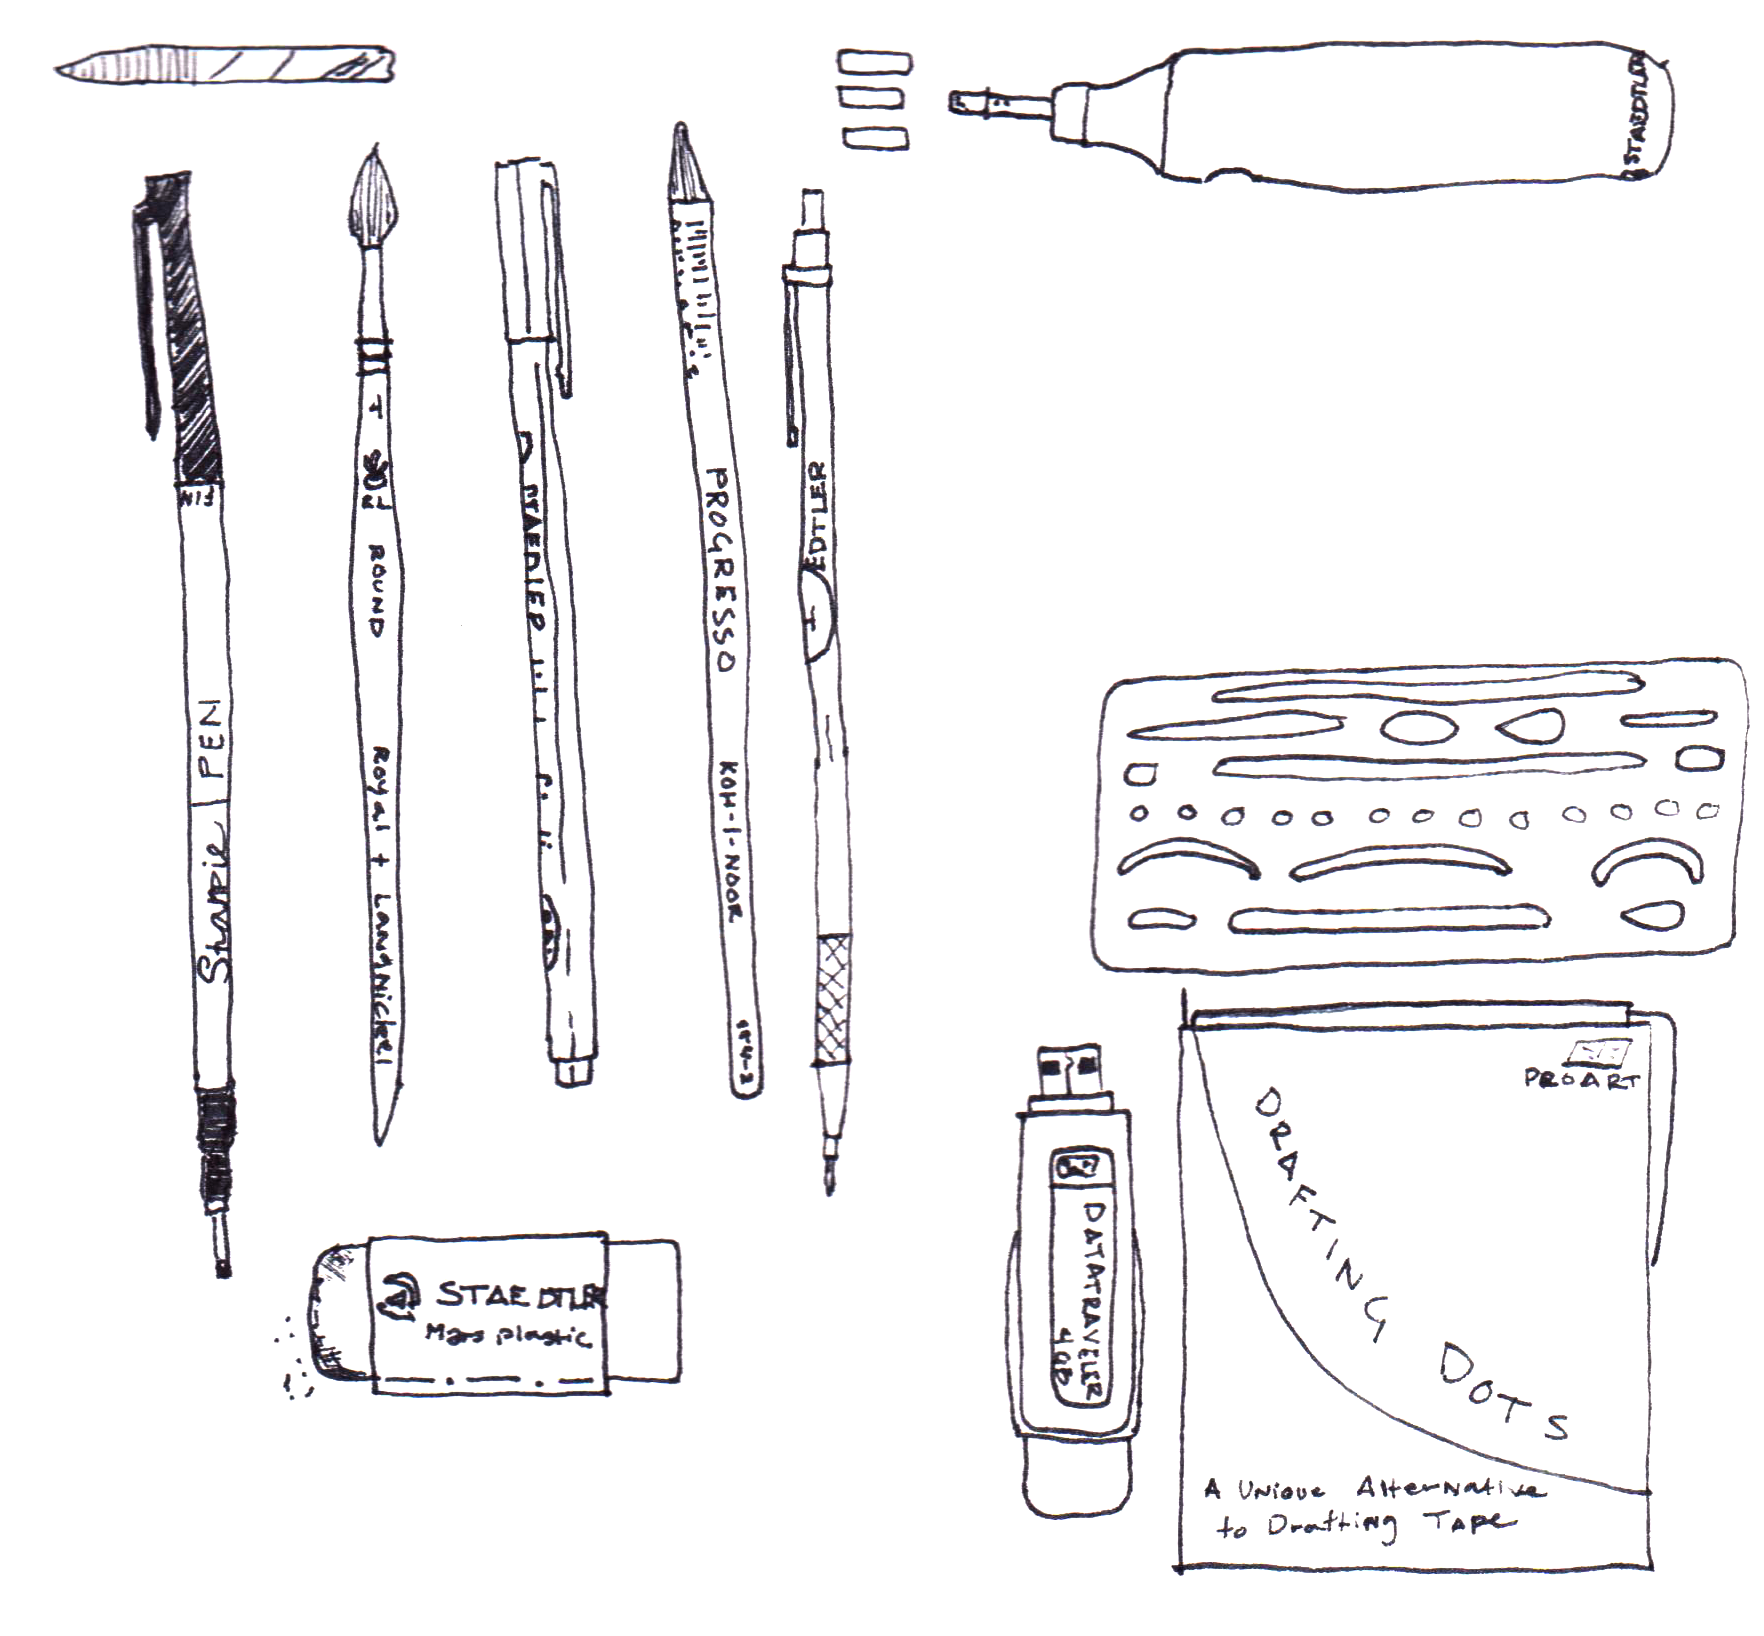 Some Tools